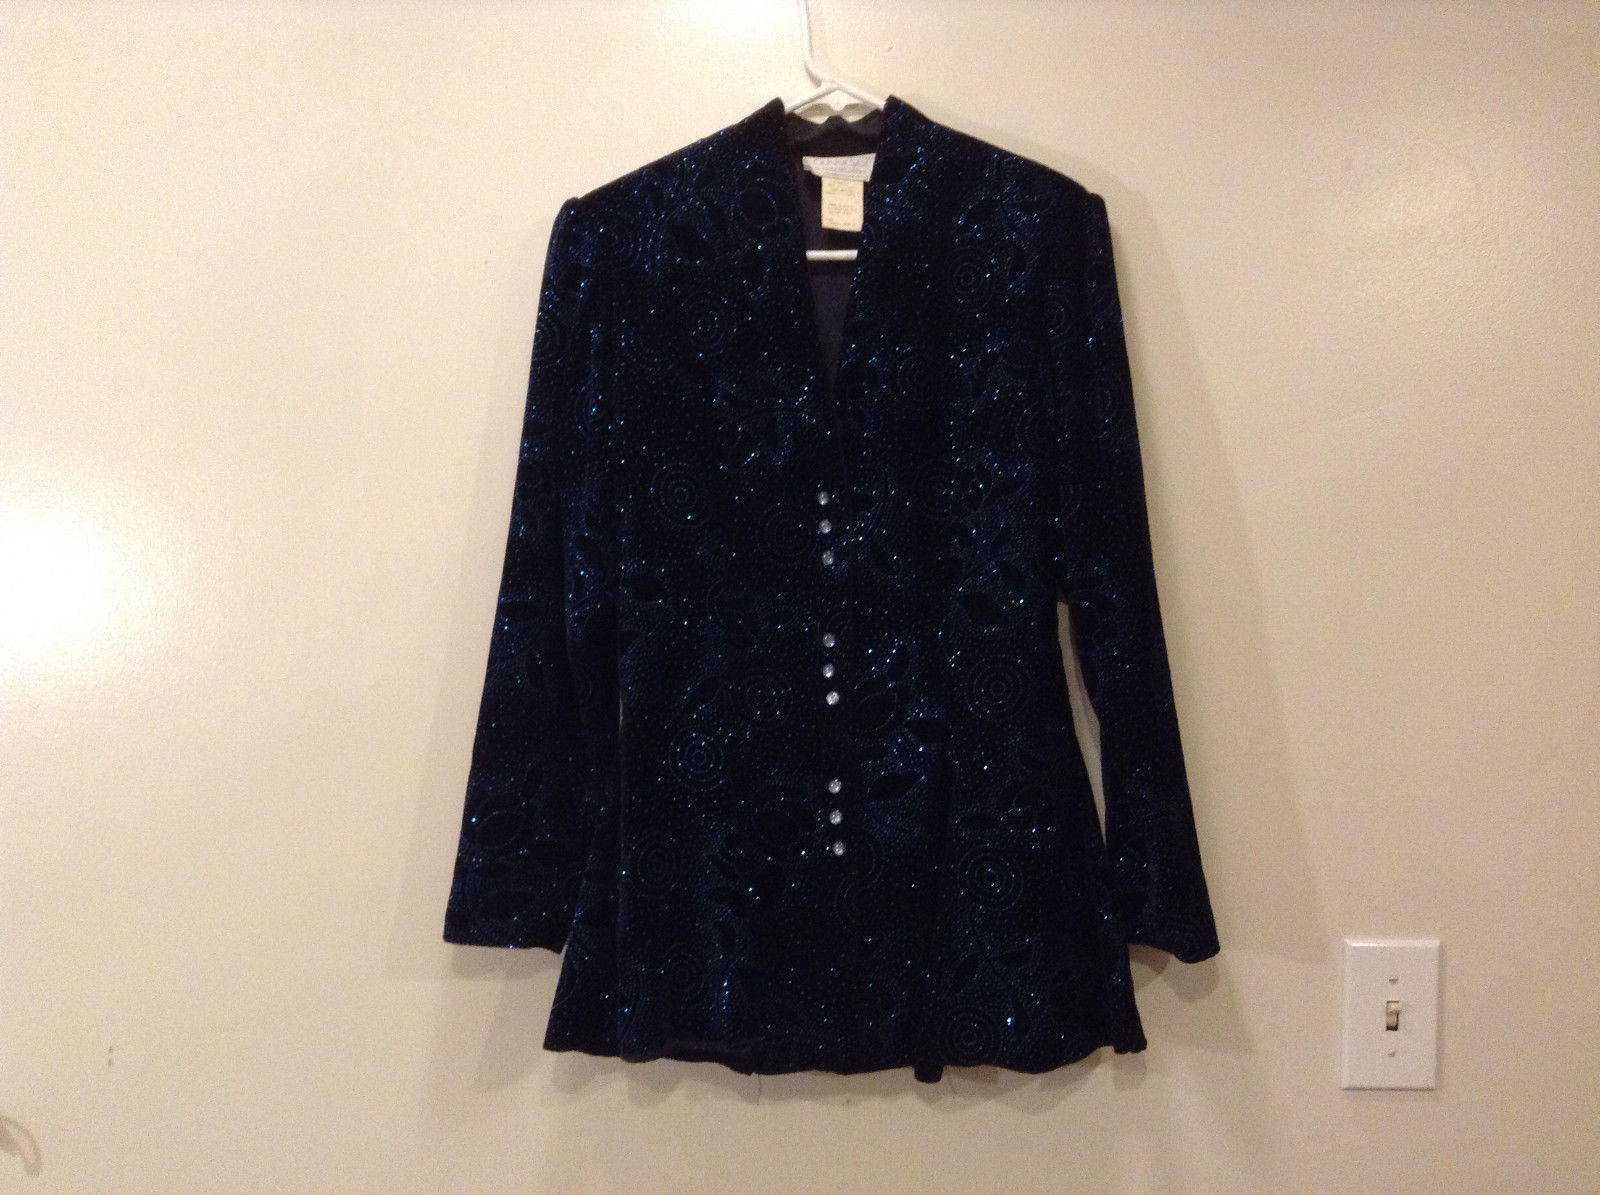 Ladies Evening Gunne Sax by Jessica McClintock Black Velvet Sparkly Jacket Size?